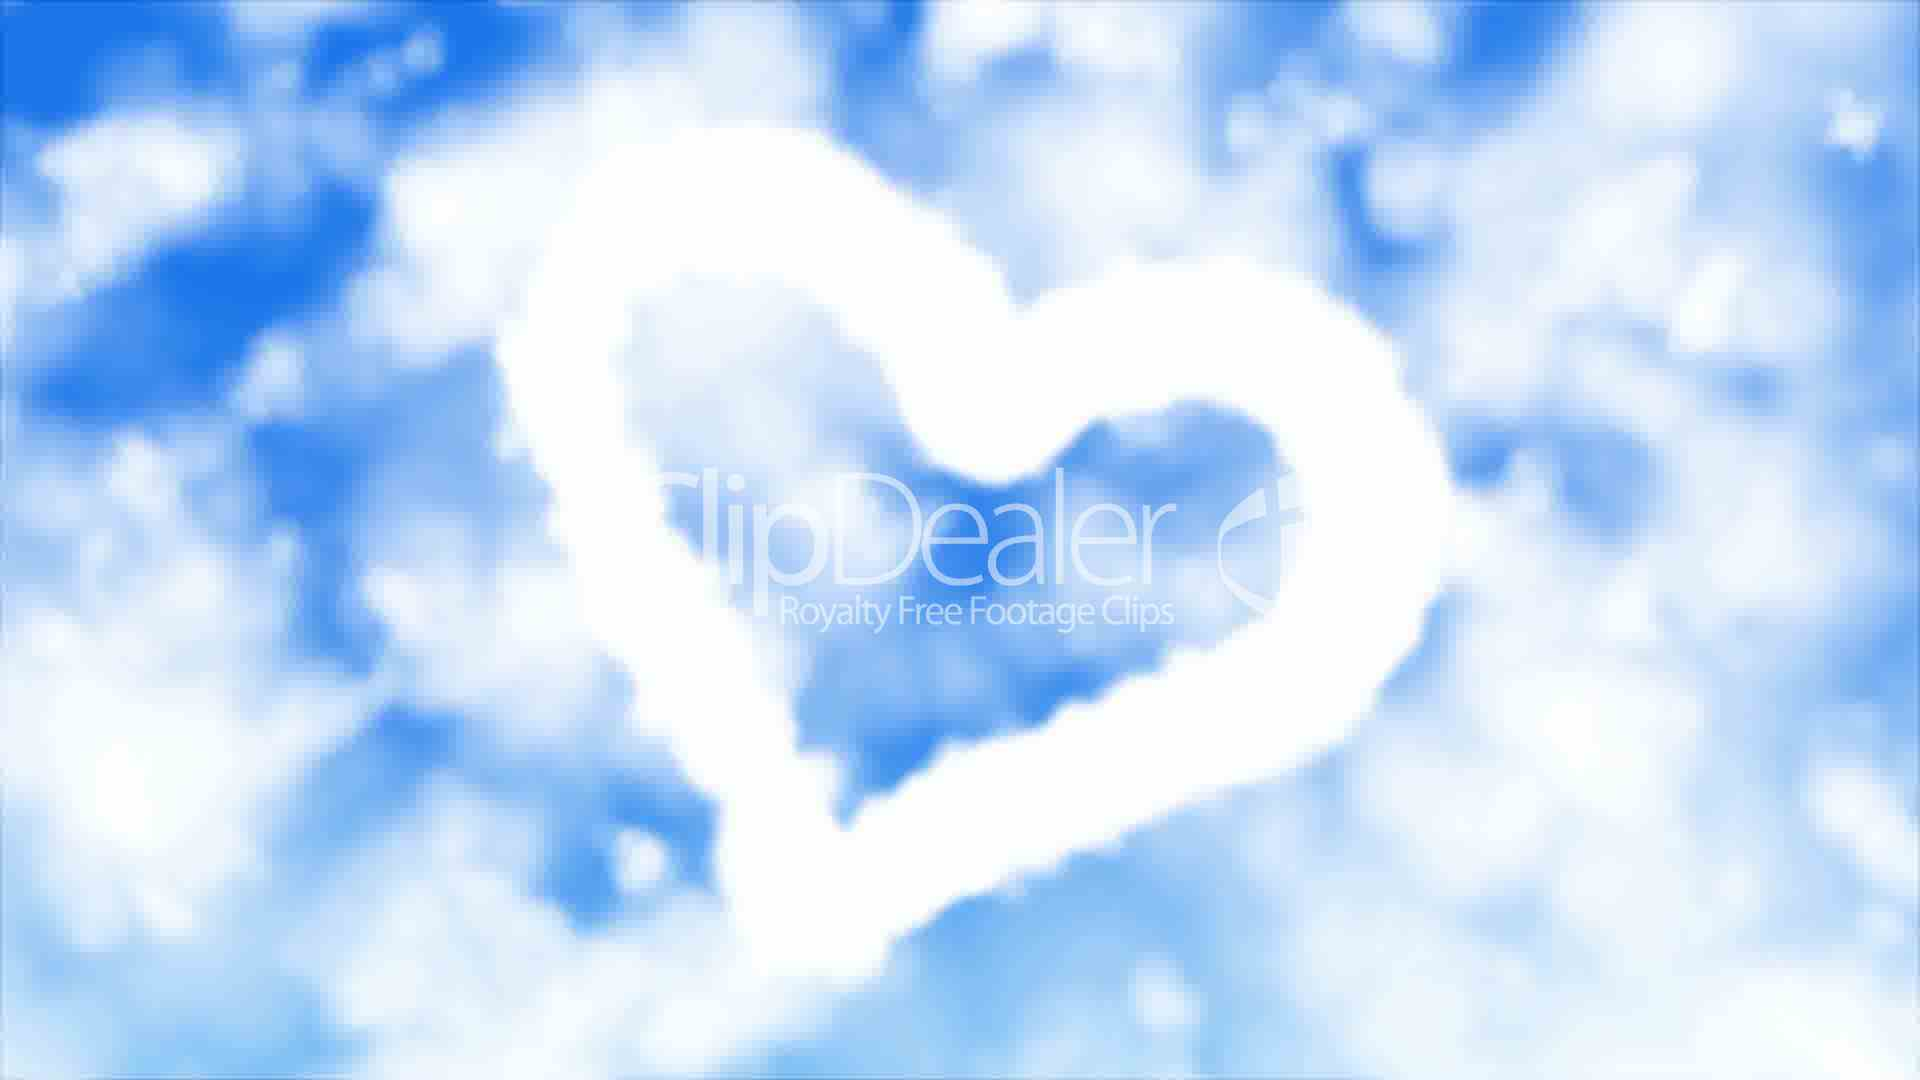 heart in clouds: royalty-free video and stock footage